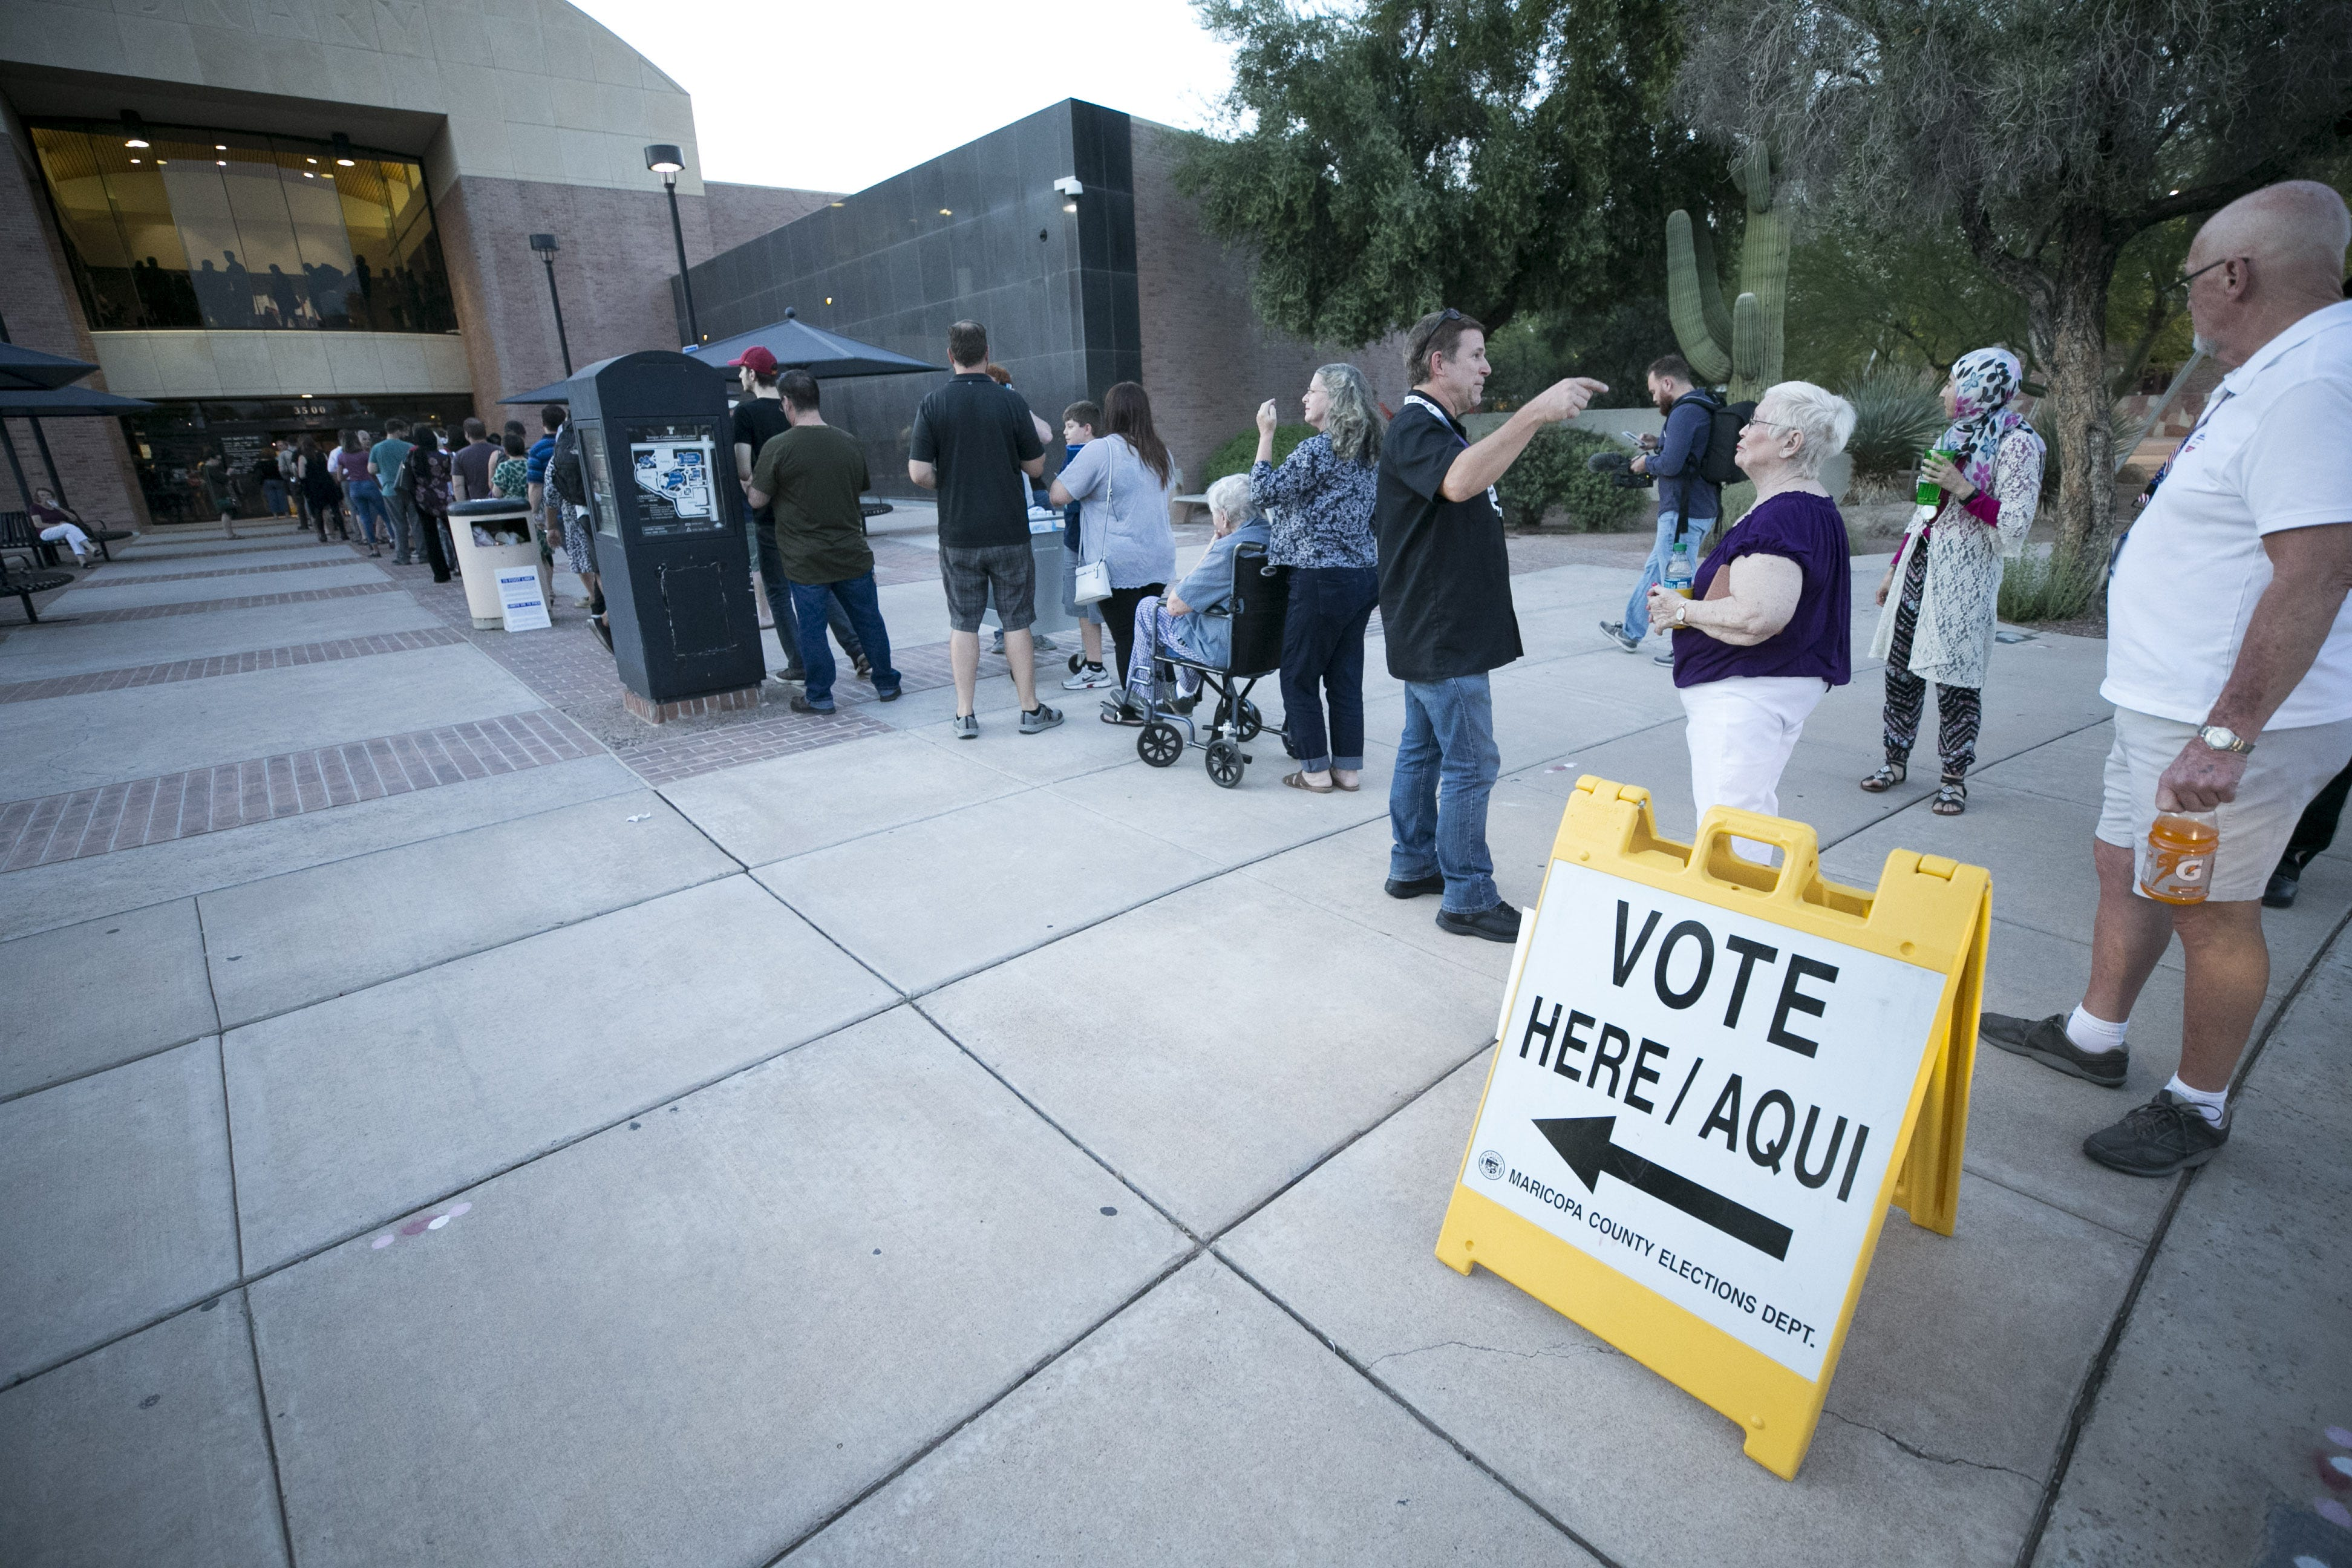 Despite rampant claims, there is no evidence of voter fraud in Arizona